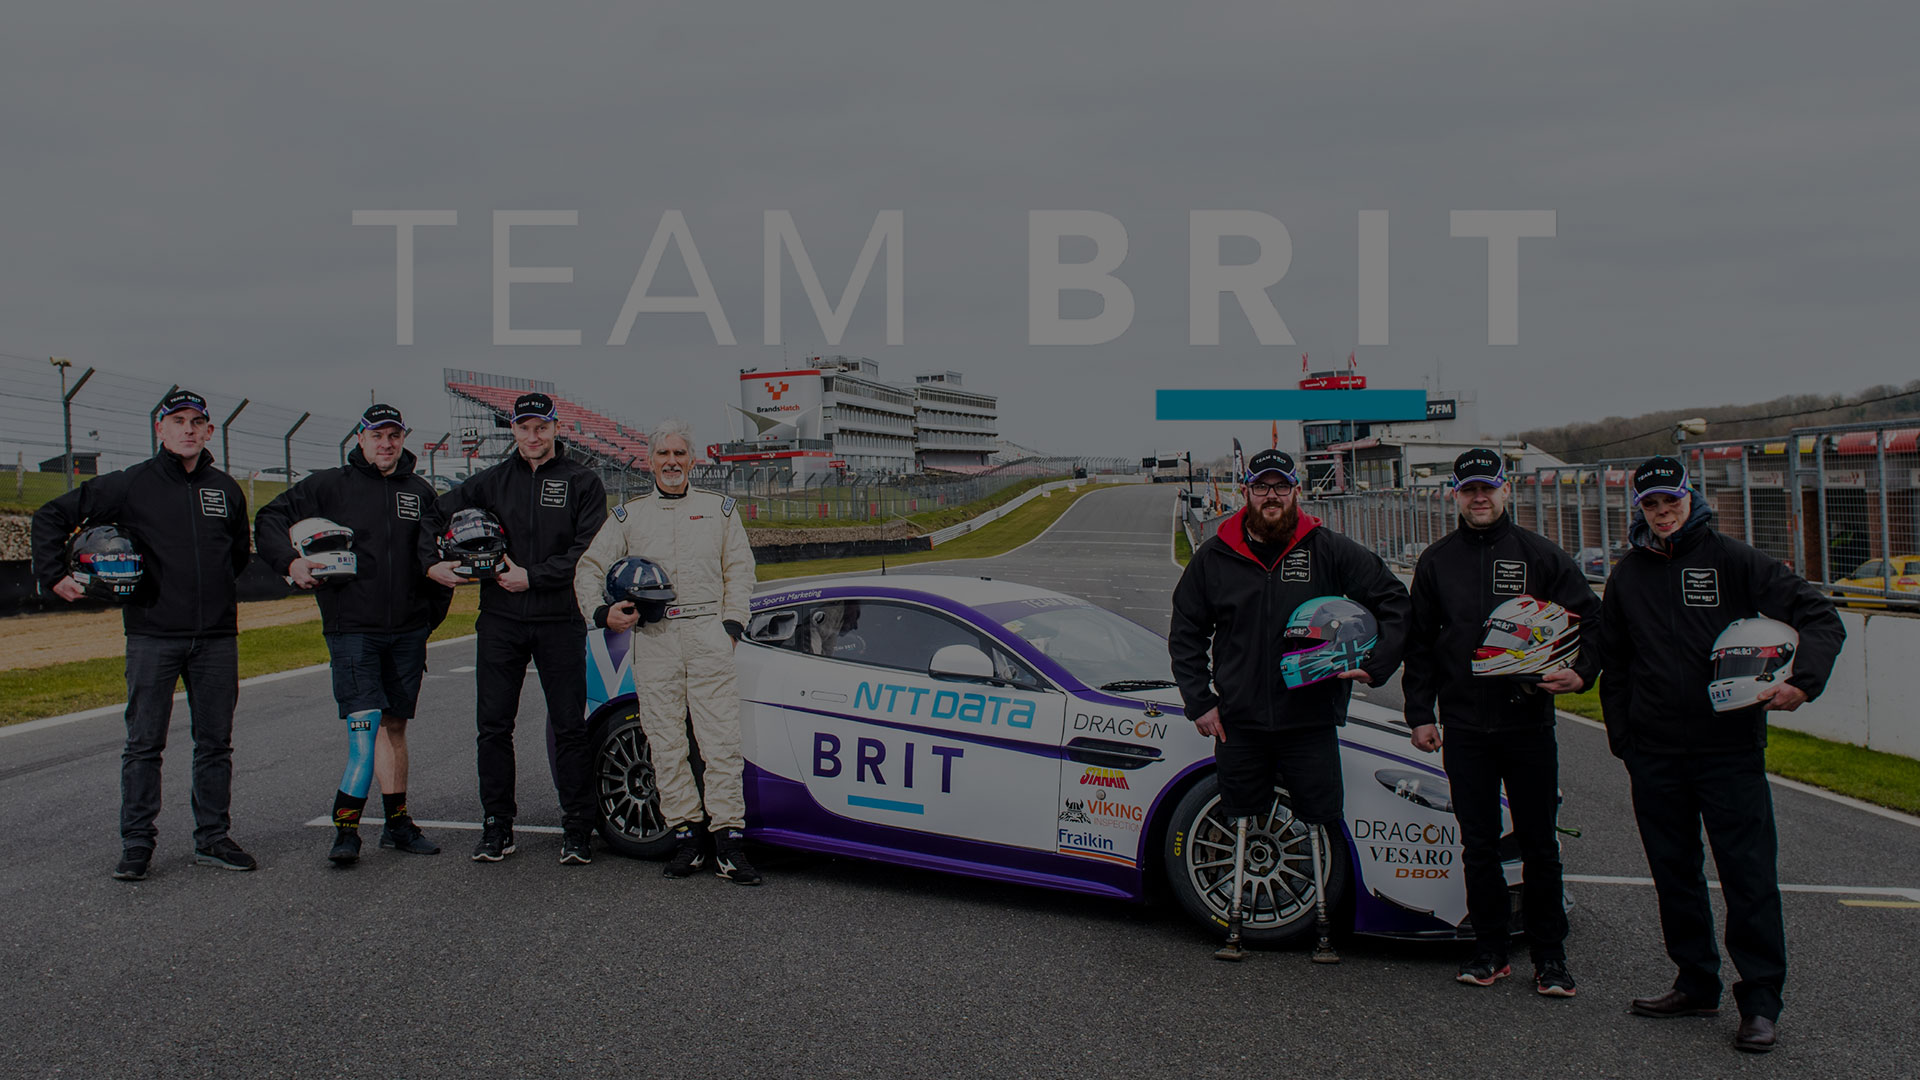 Team BRIT Launches Aston Martin V8 Vantage GT4